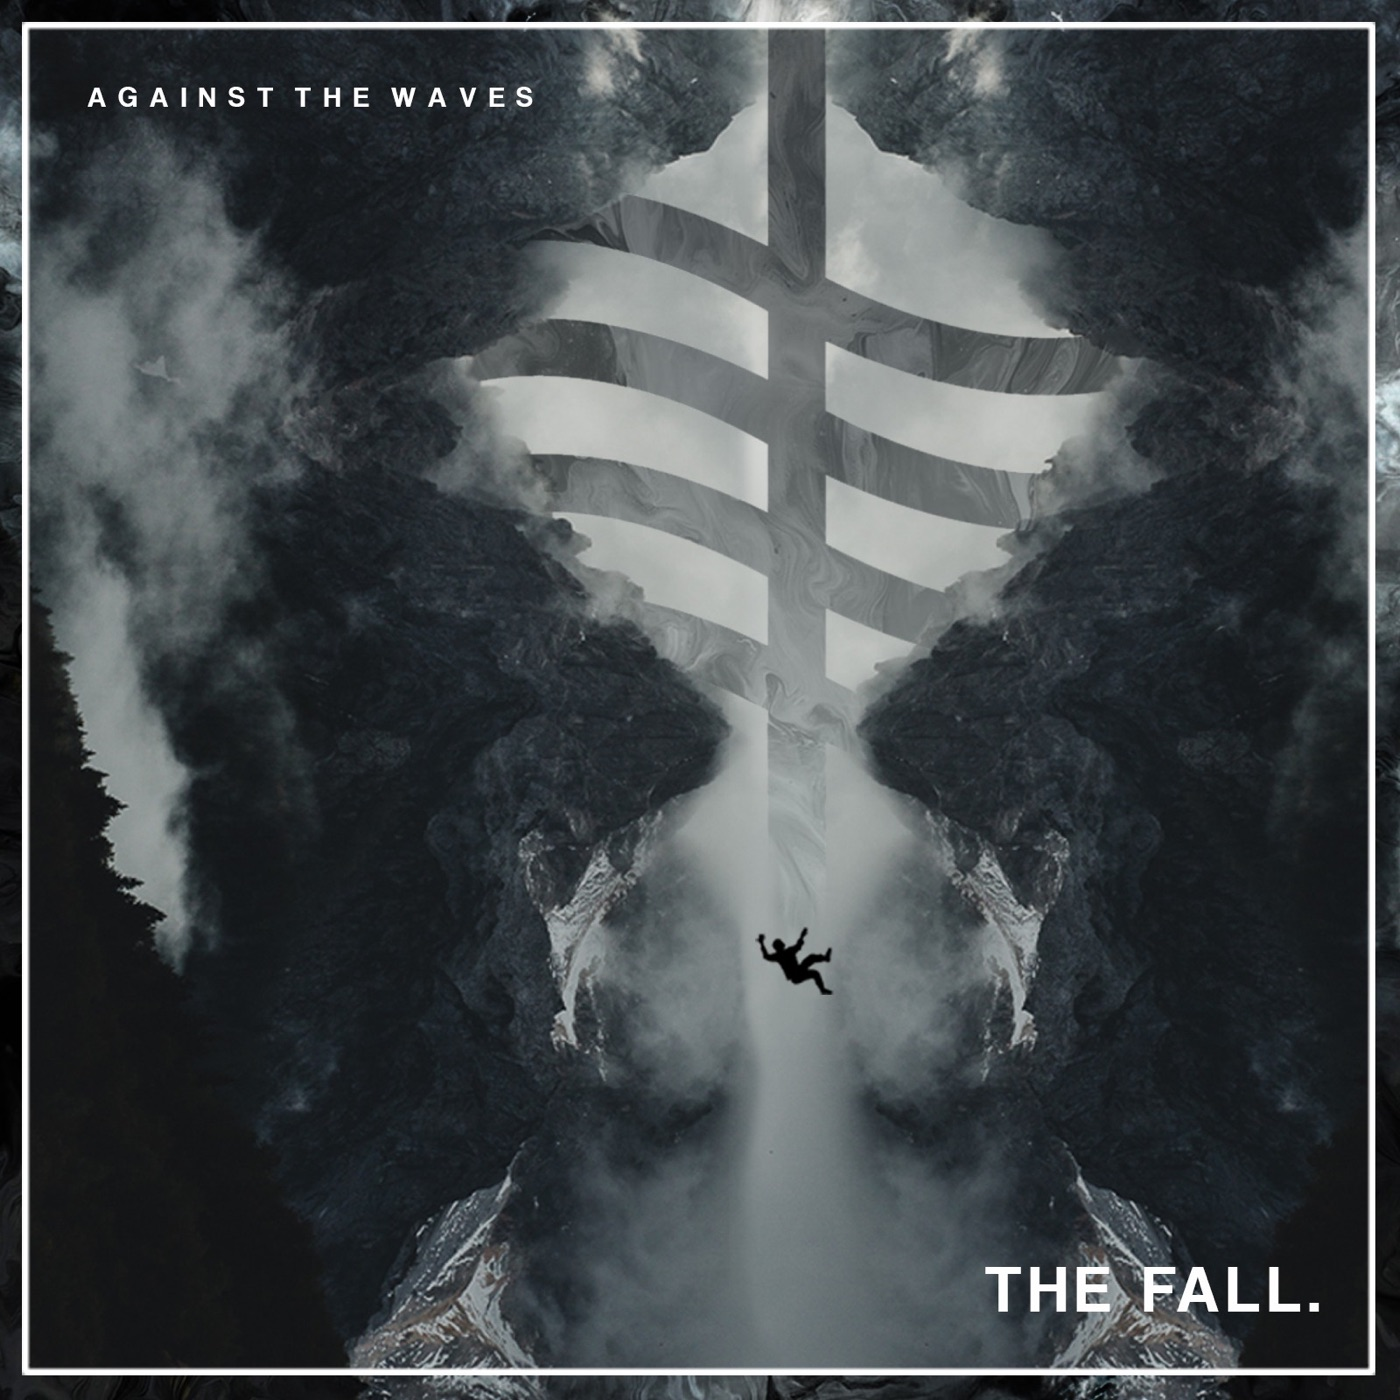 Against the Waves - The Fall [single] (2018)